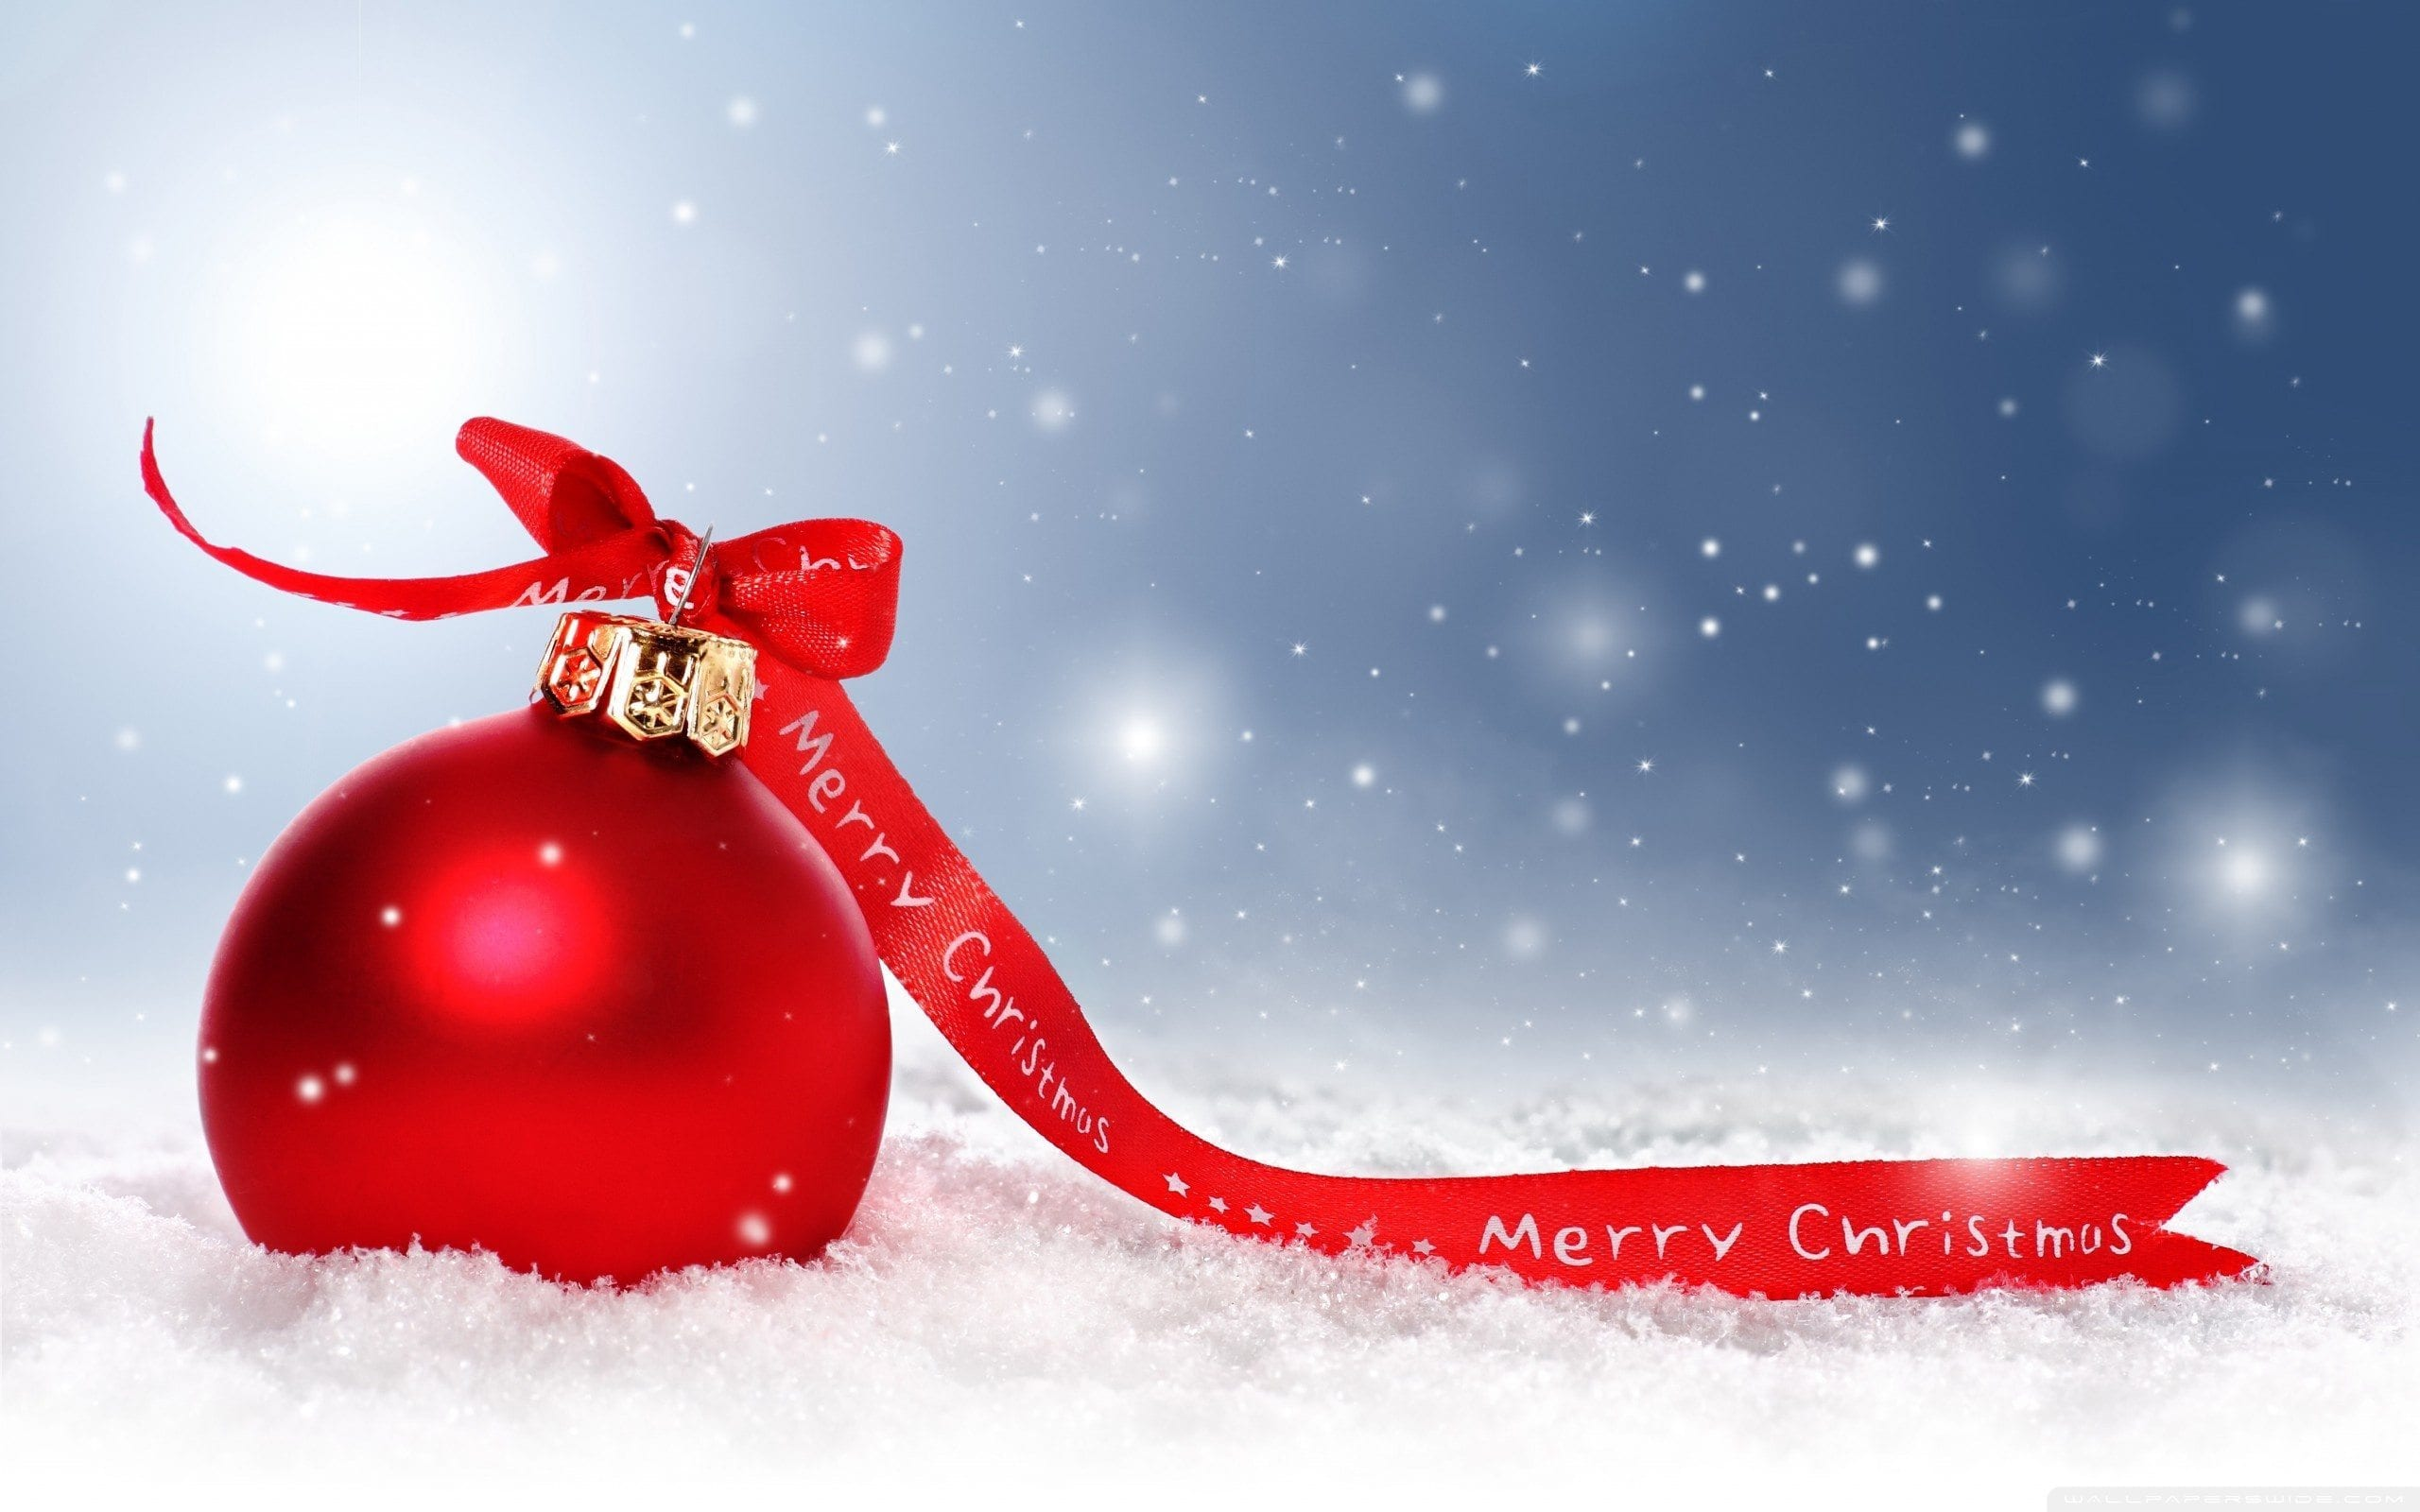 merry-christmas-wallpaper-5-Awesome-Wallpapers